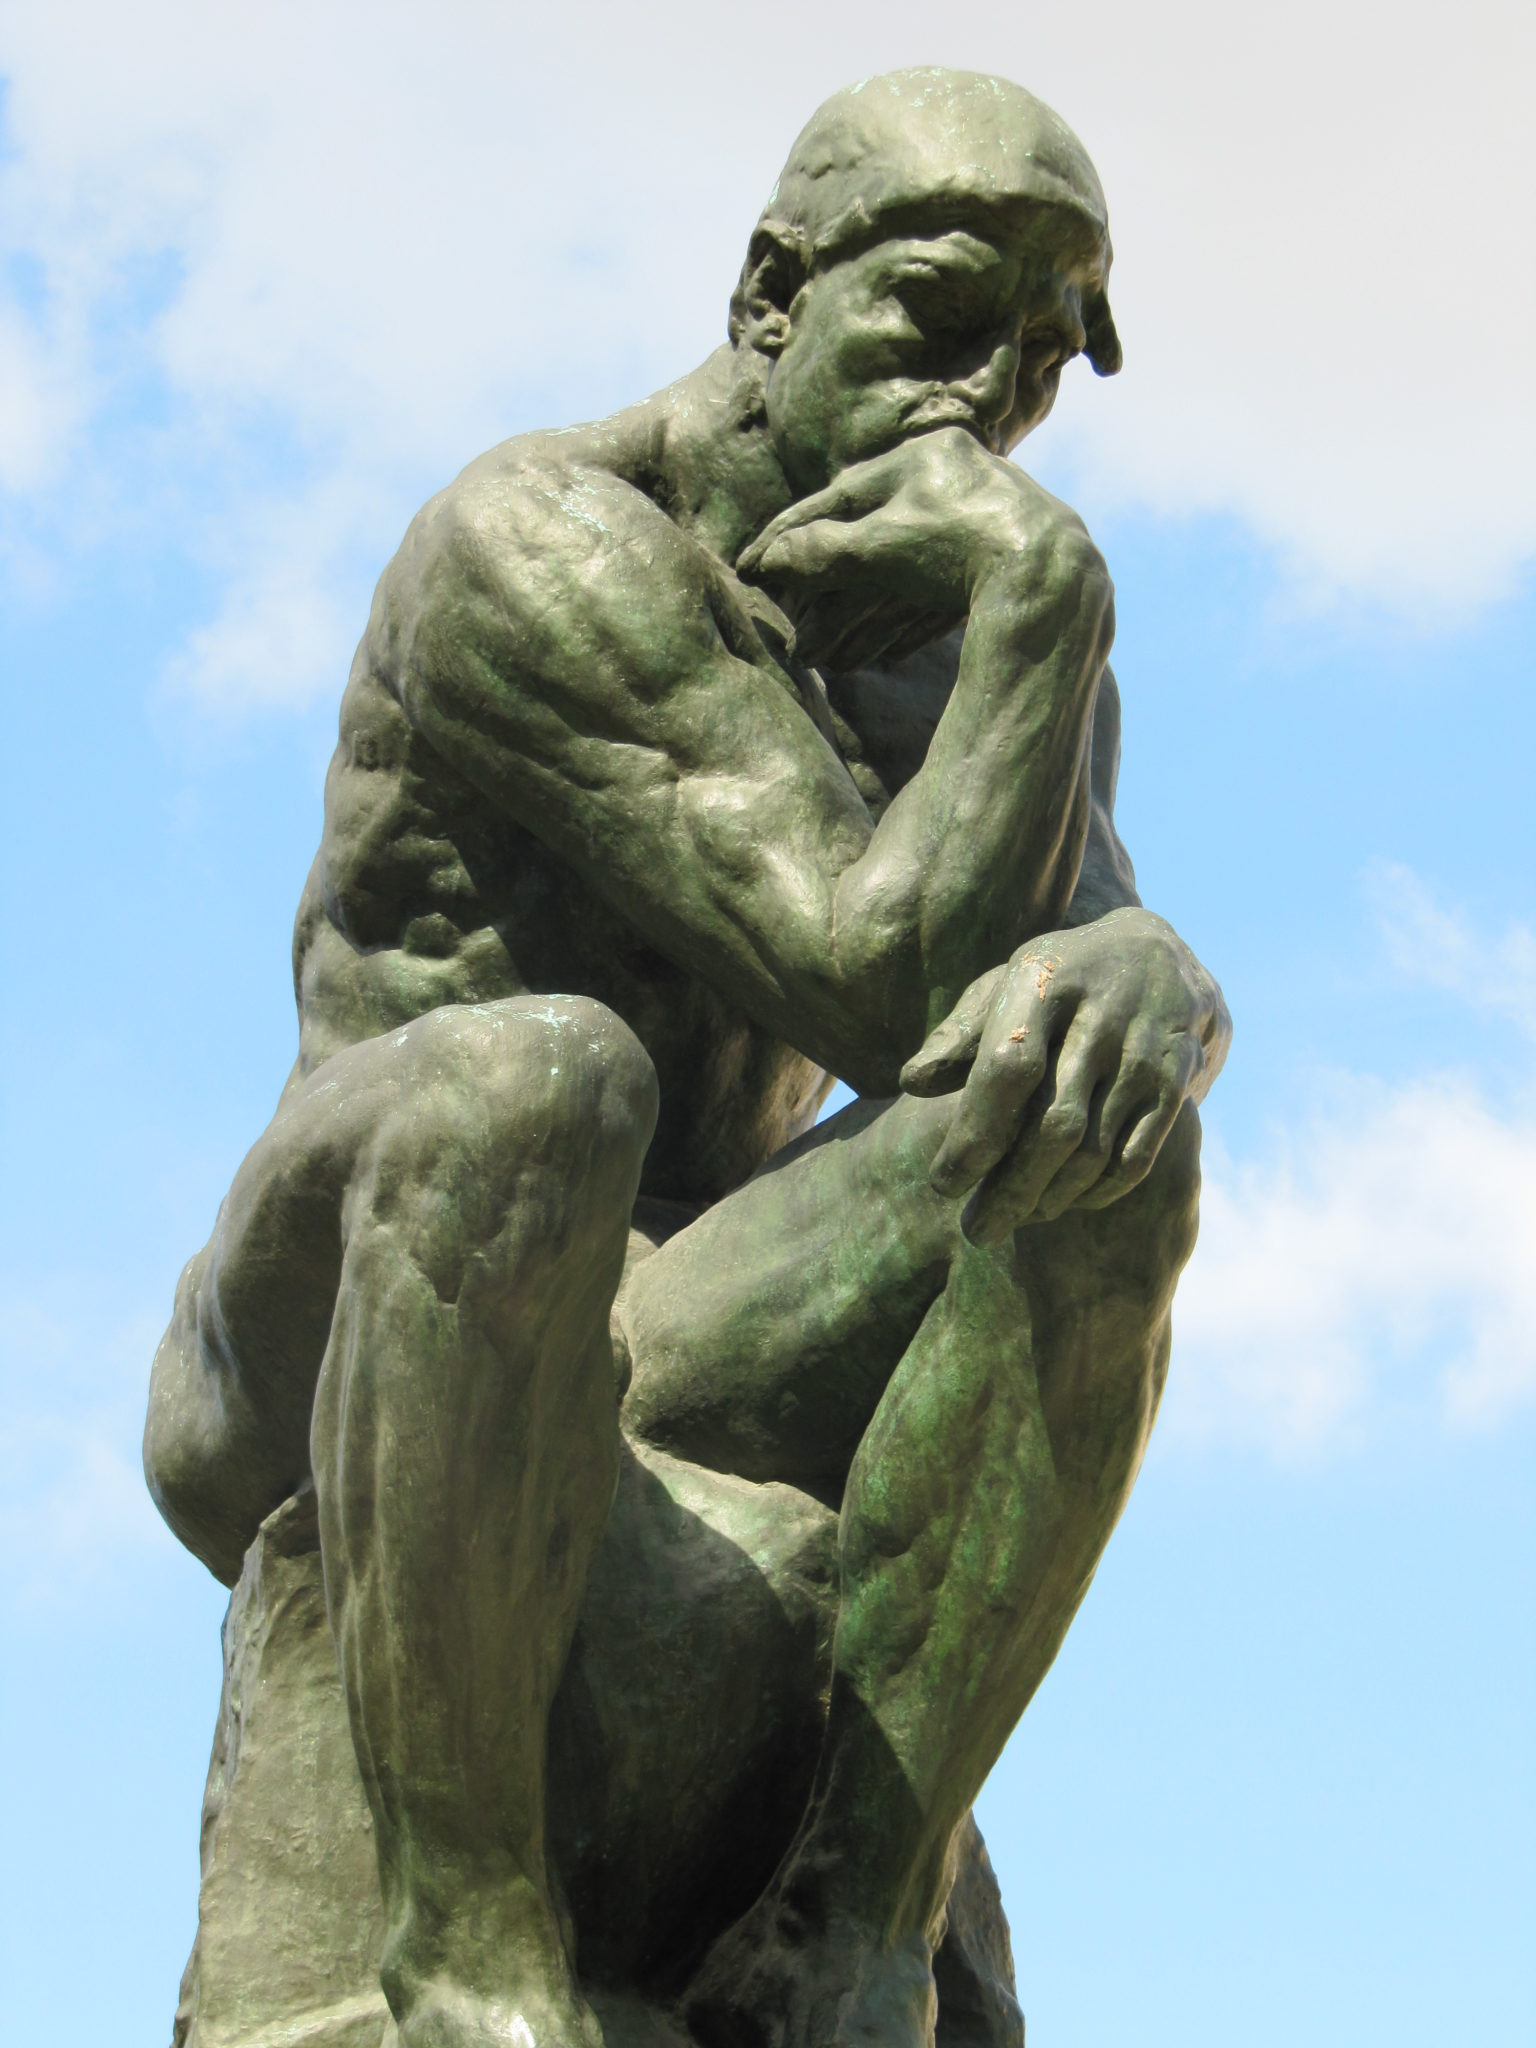 The Thinker by Auguste Rodin at the Rodin Museum.